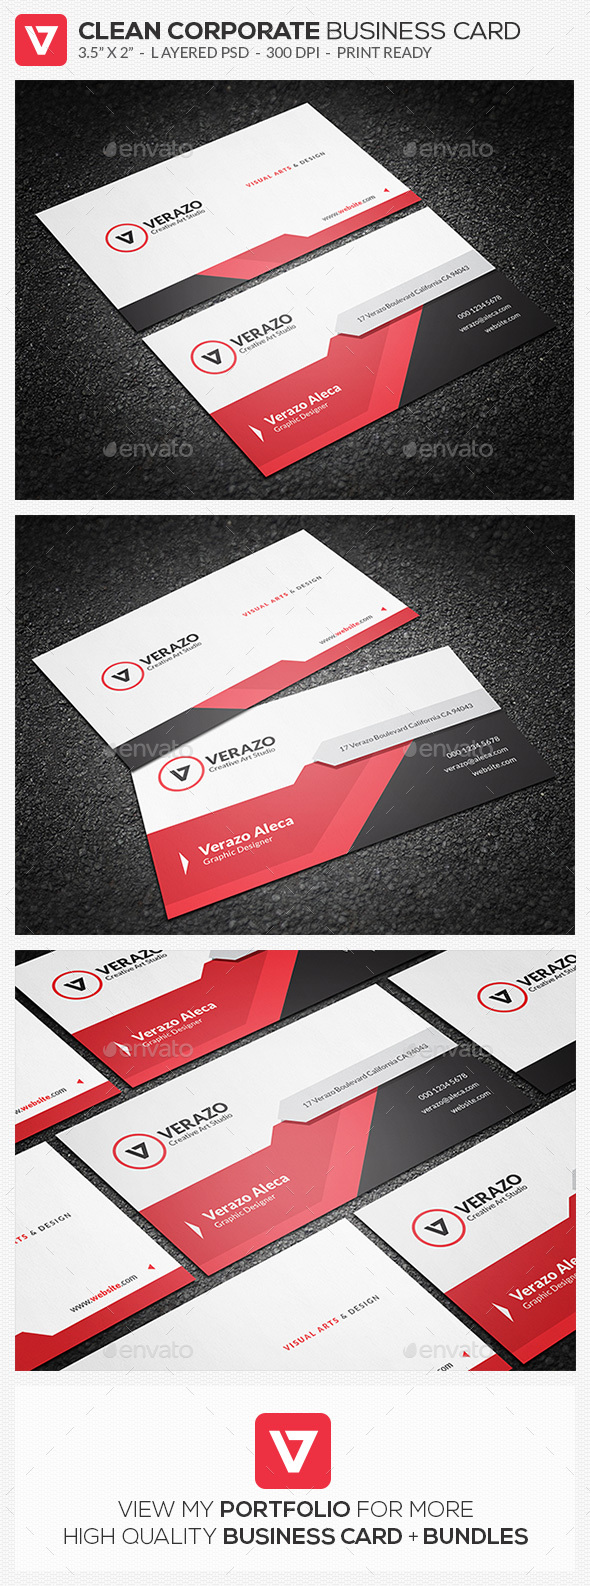 Money Back Graphics Designs Templates From GraphicRiver Page - Modern business card design templates